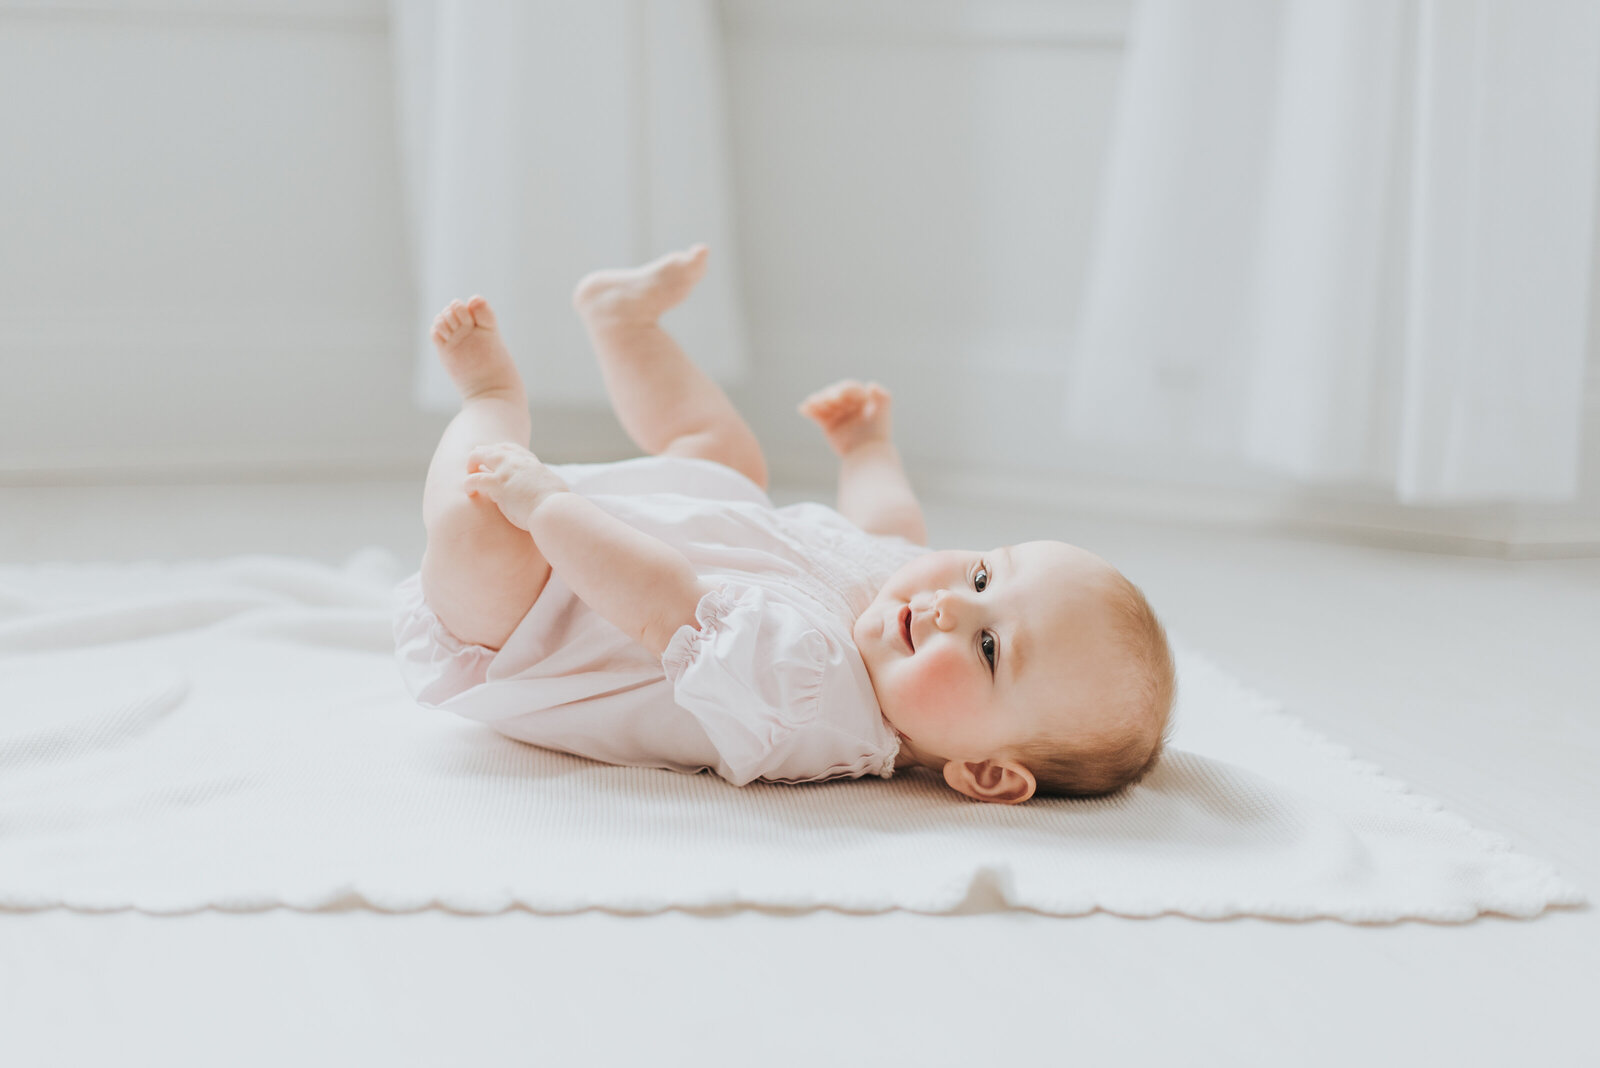 Louise-Pinto-Simple-Baby-11